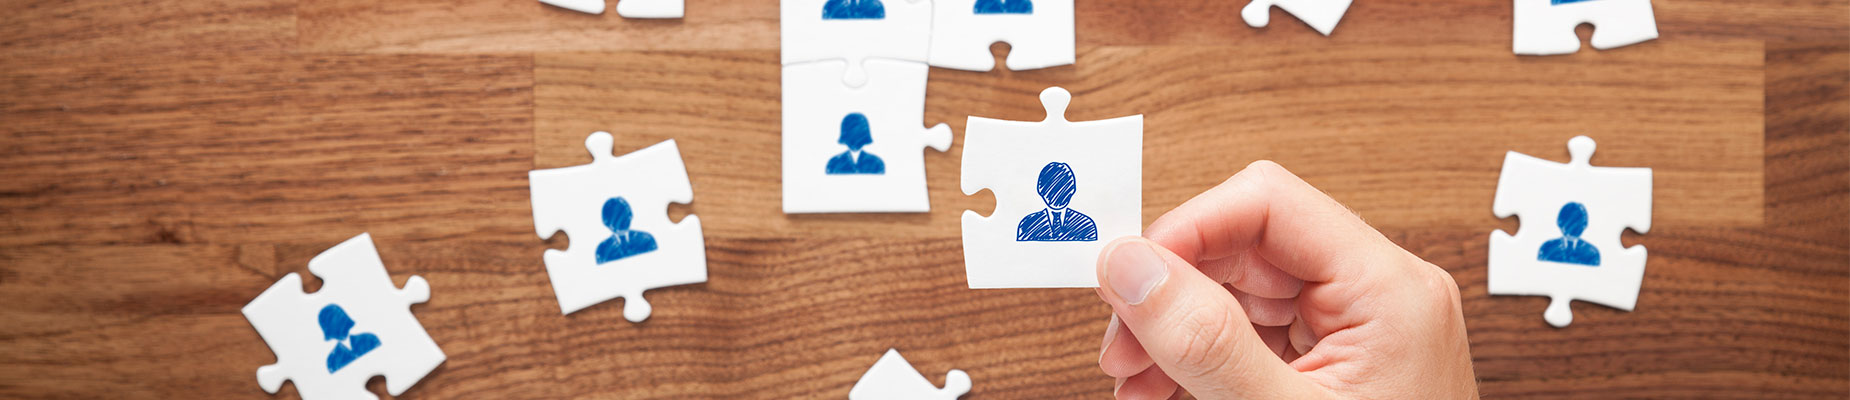 Hand with a puzzle putting together consultant career opportunities in HR